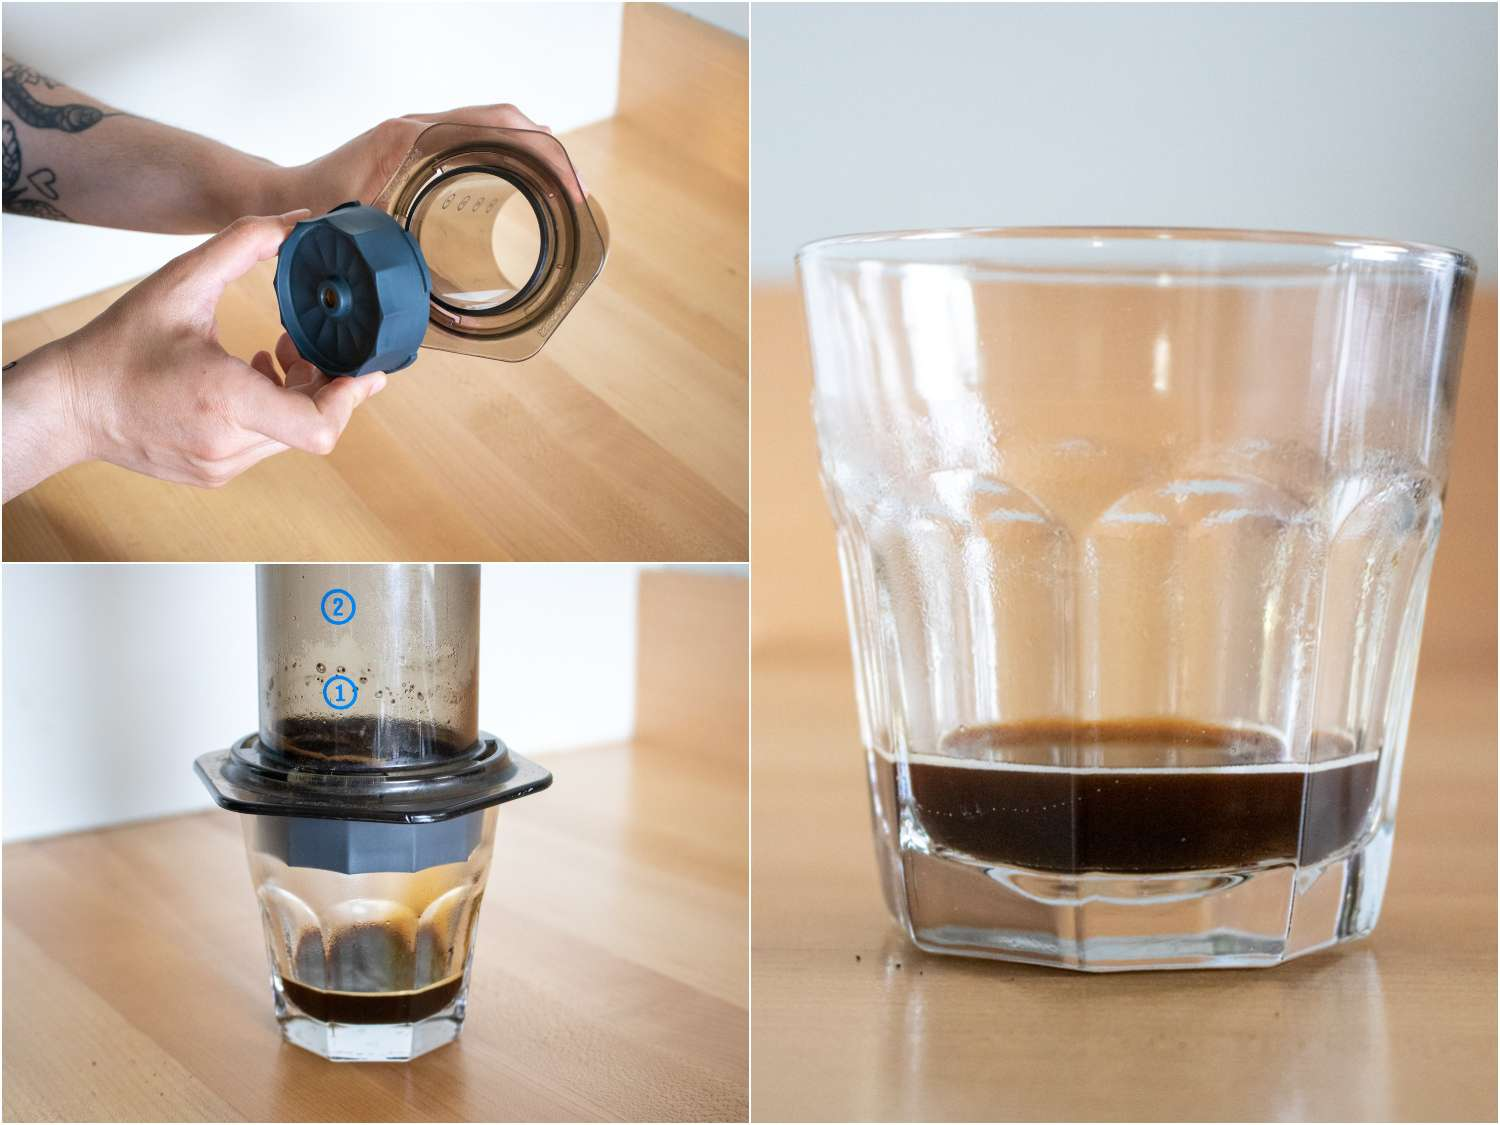 collage of the Fellow Prismo, Pressure-Actuated Attachment for AeroPress in use: connecting attachment to Aeropress; pushing down to extract espresso; a shot of espresso in a glass